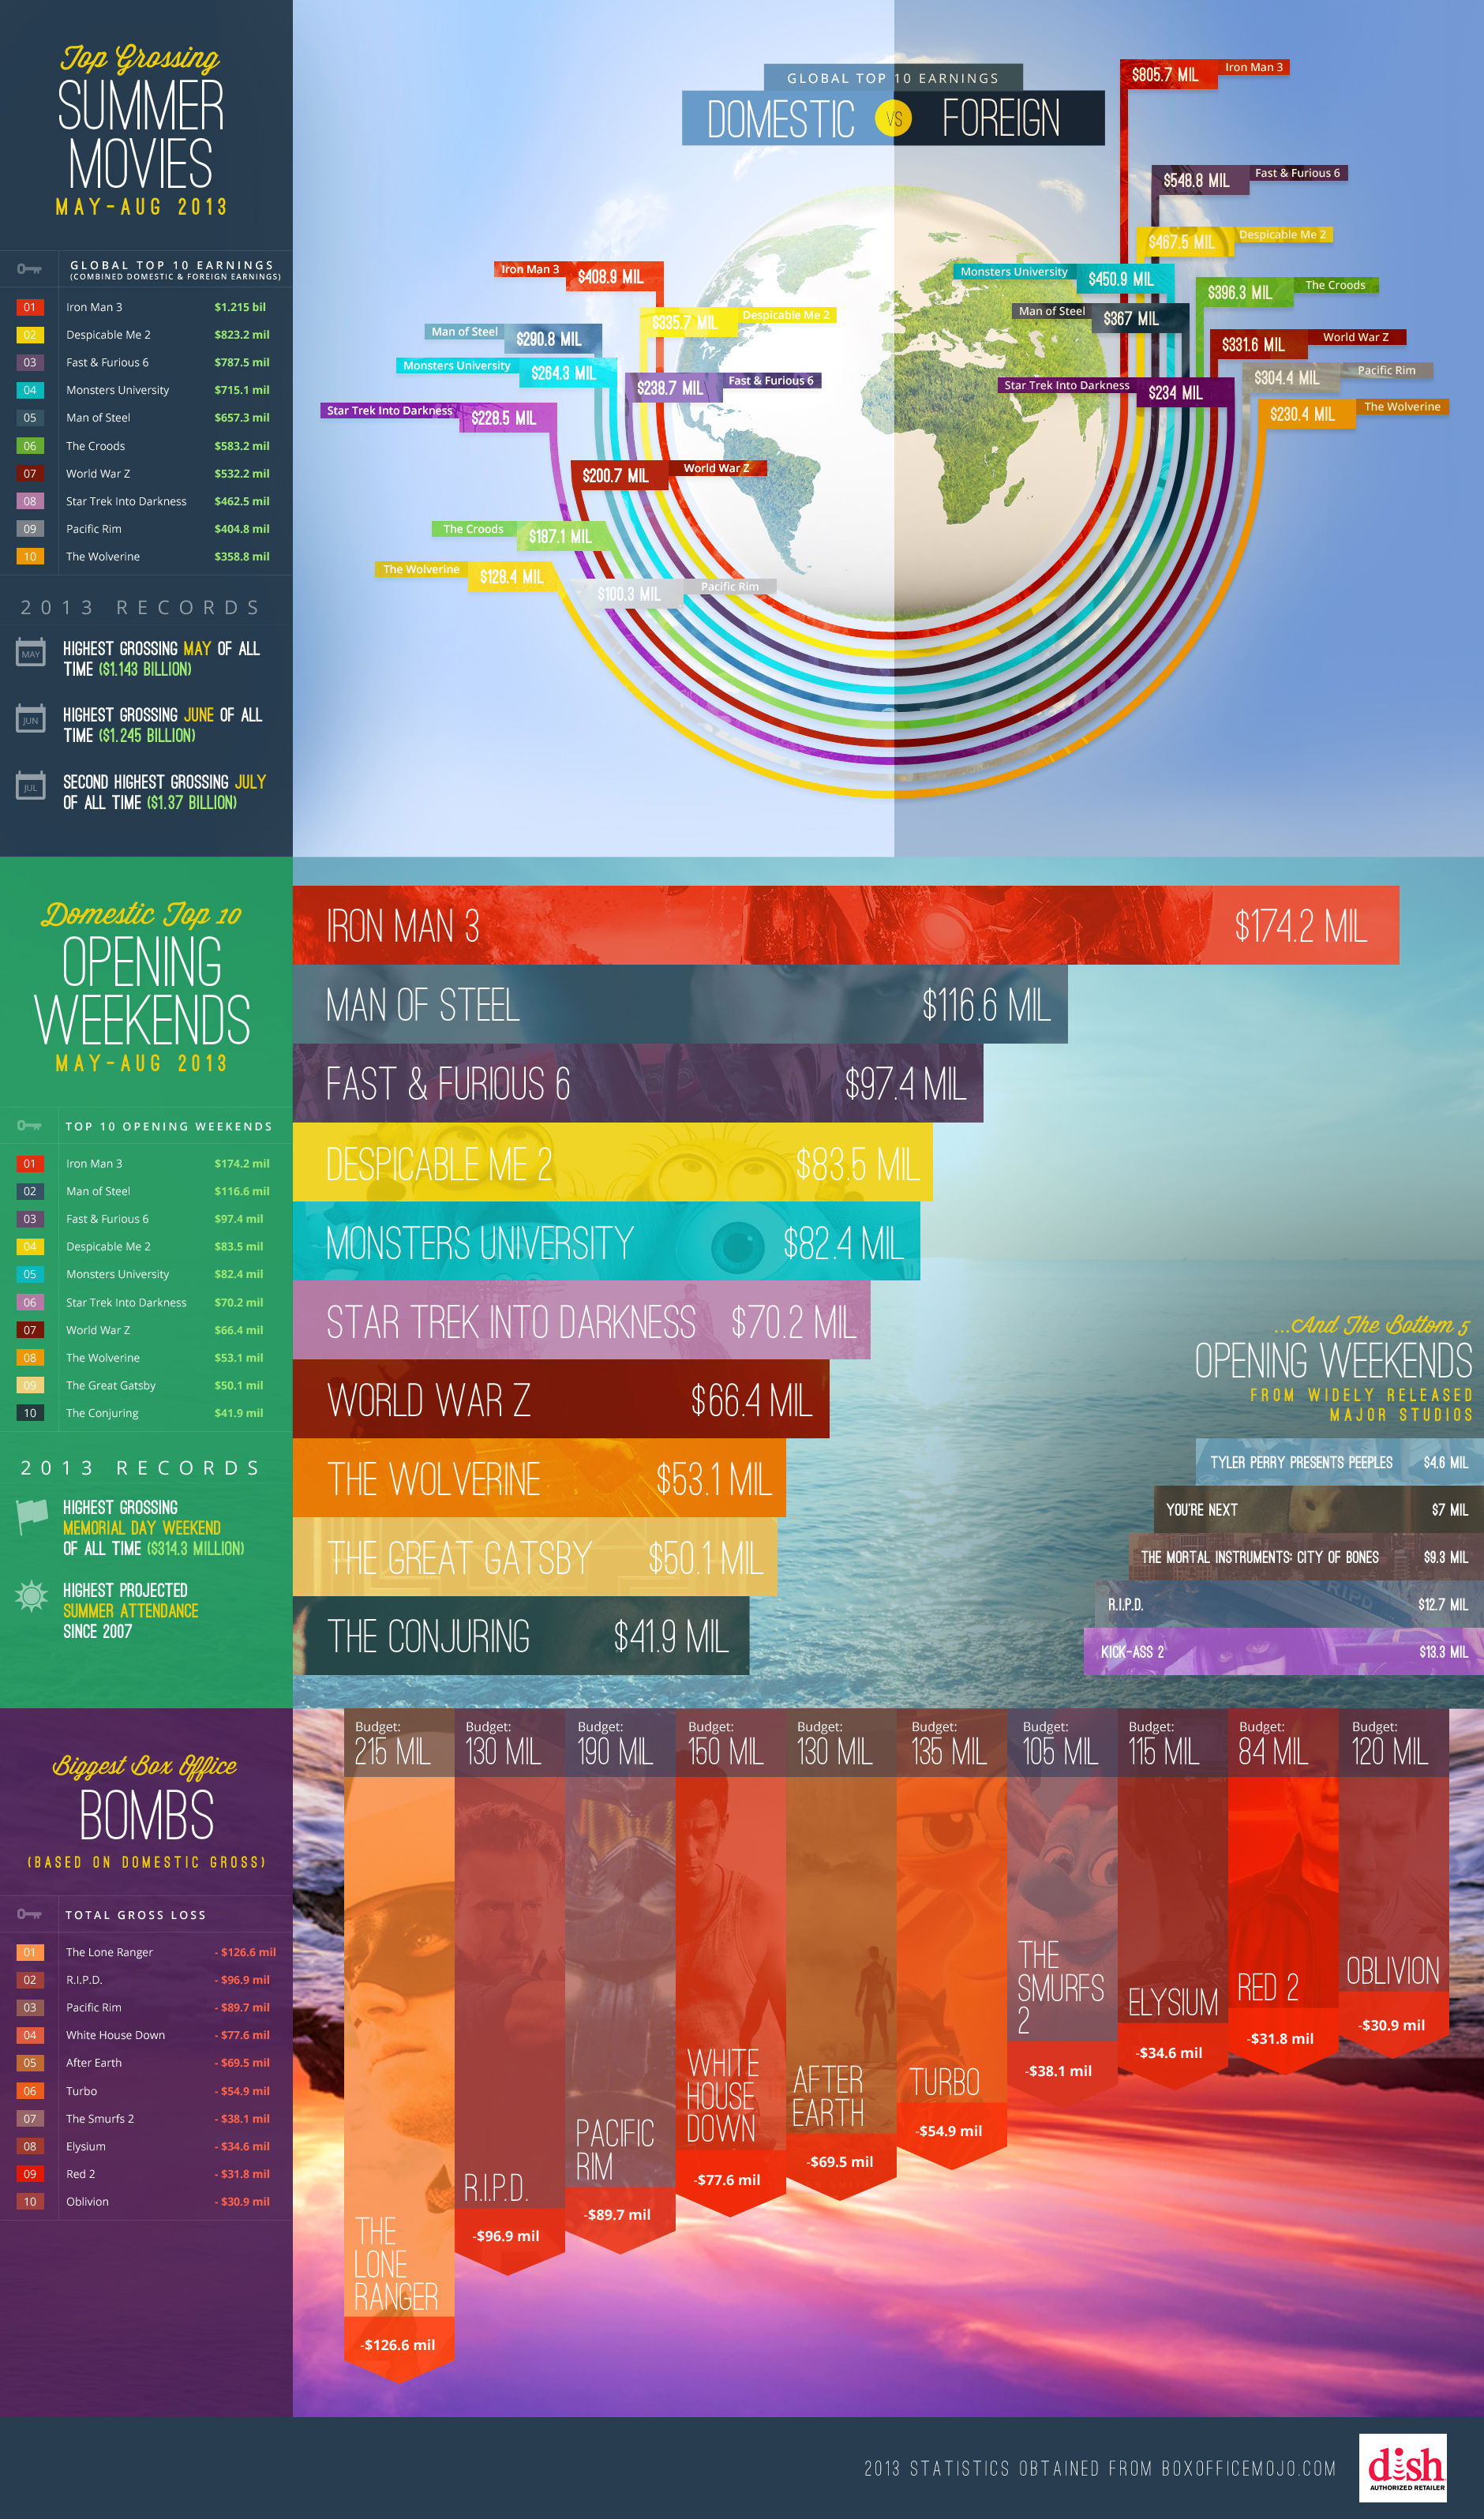 2013 Summer Box Office Infographic